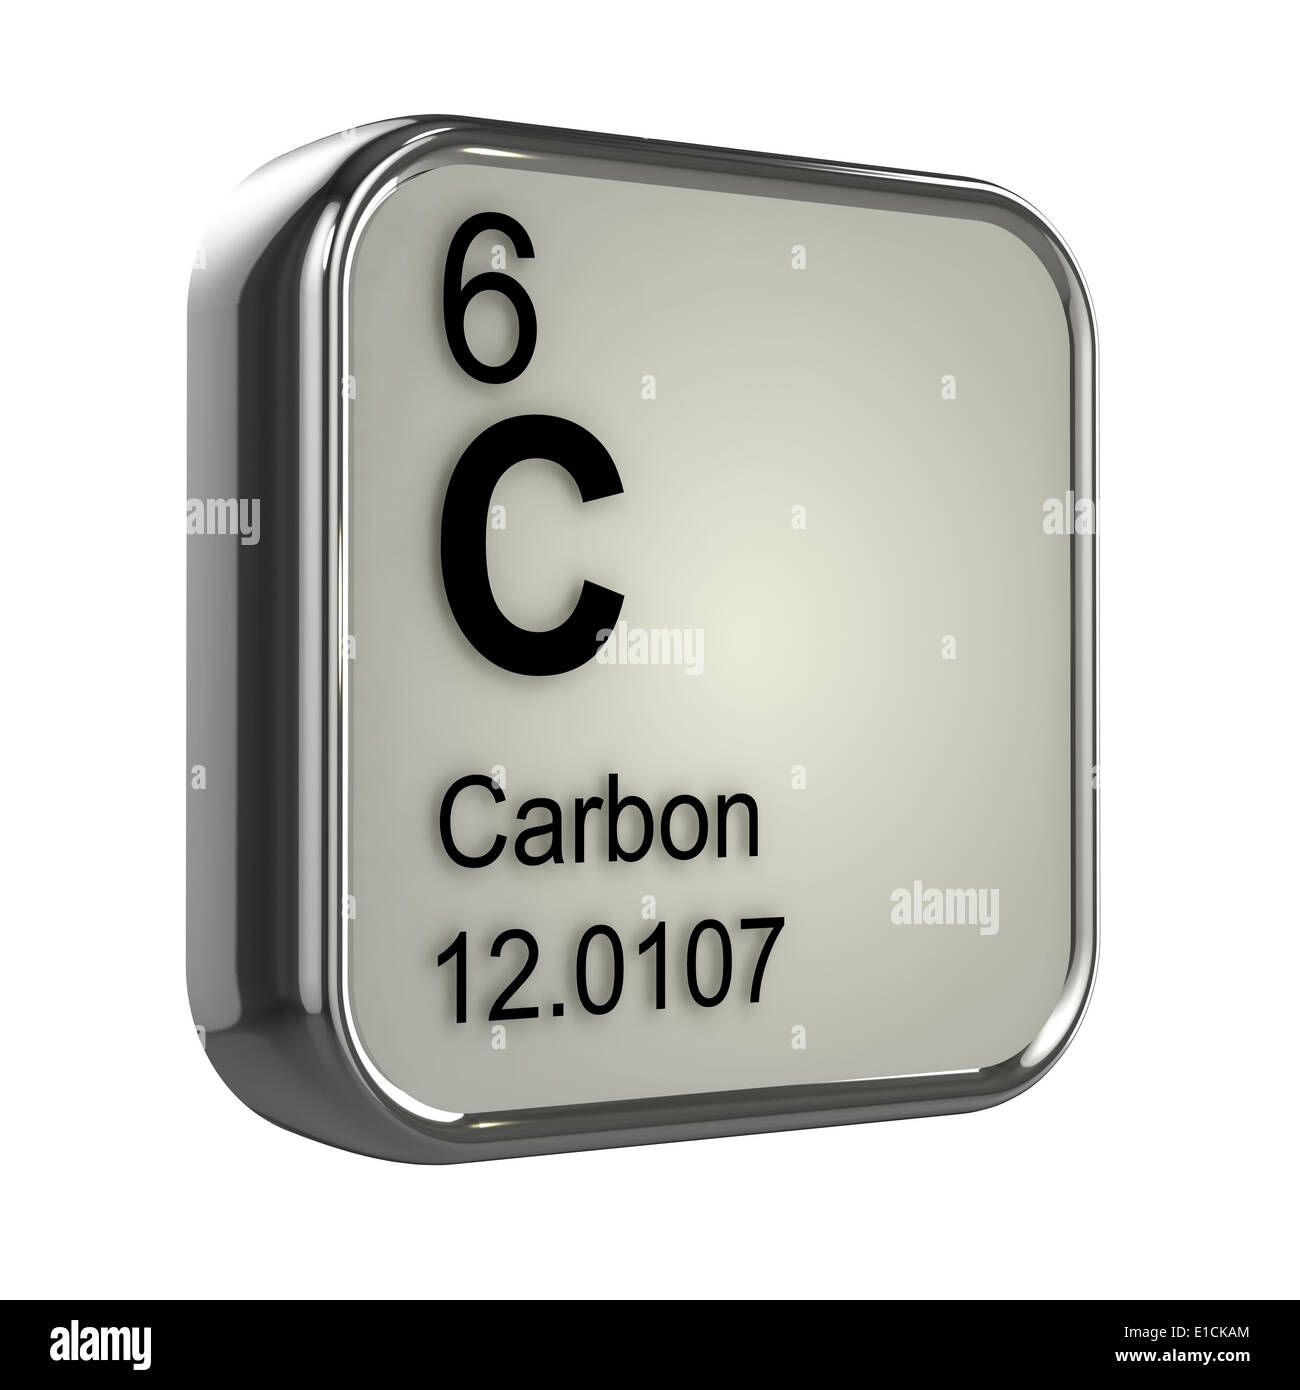 3d periodic table design for carbon element stock photo 69734748 3d periodic table design for carbon element urtaz Gallery